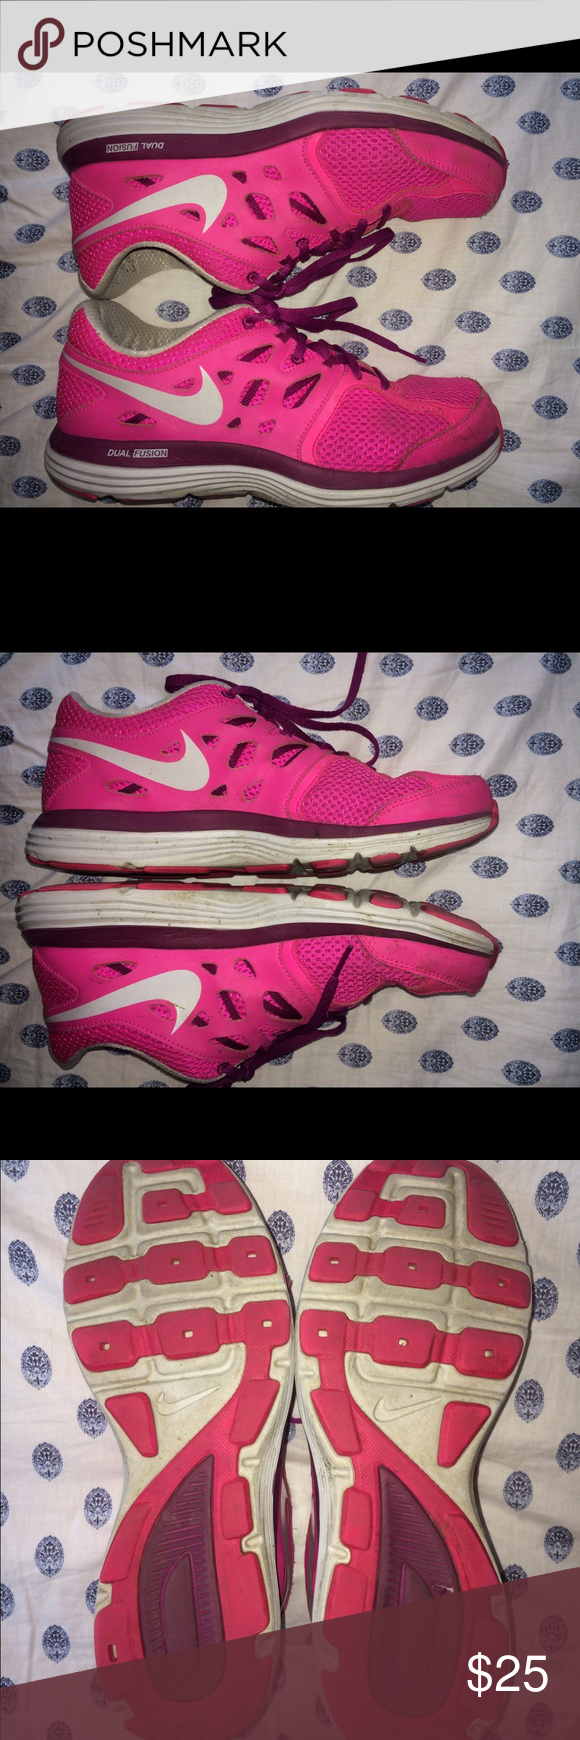 Nike Dual Fusionlite These are a size 8.5! They are pink and fit comfortable! They are perfect for running or just for class!! Will clean before shipping!! Nike Shoes Athletic Shoes